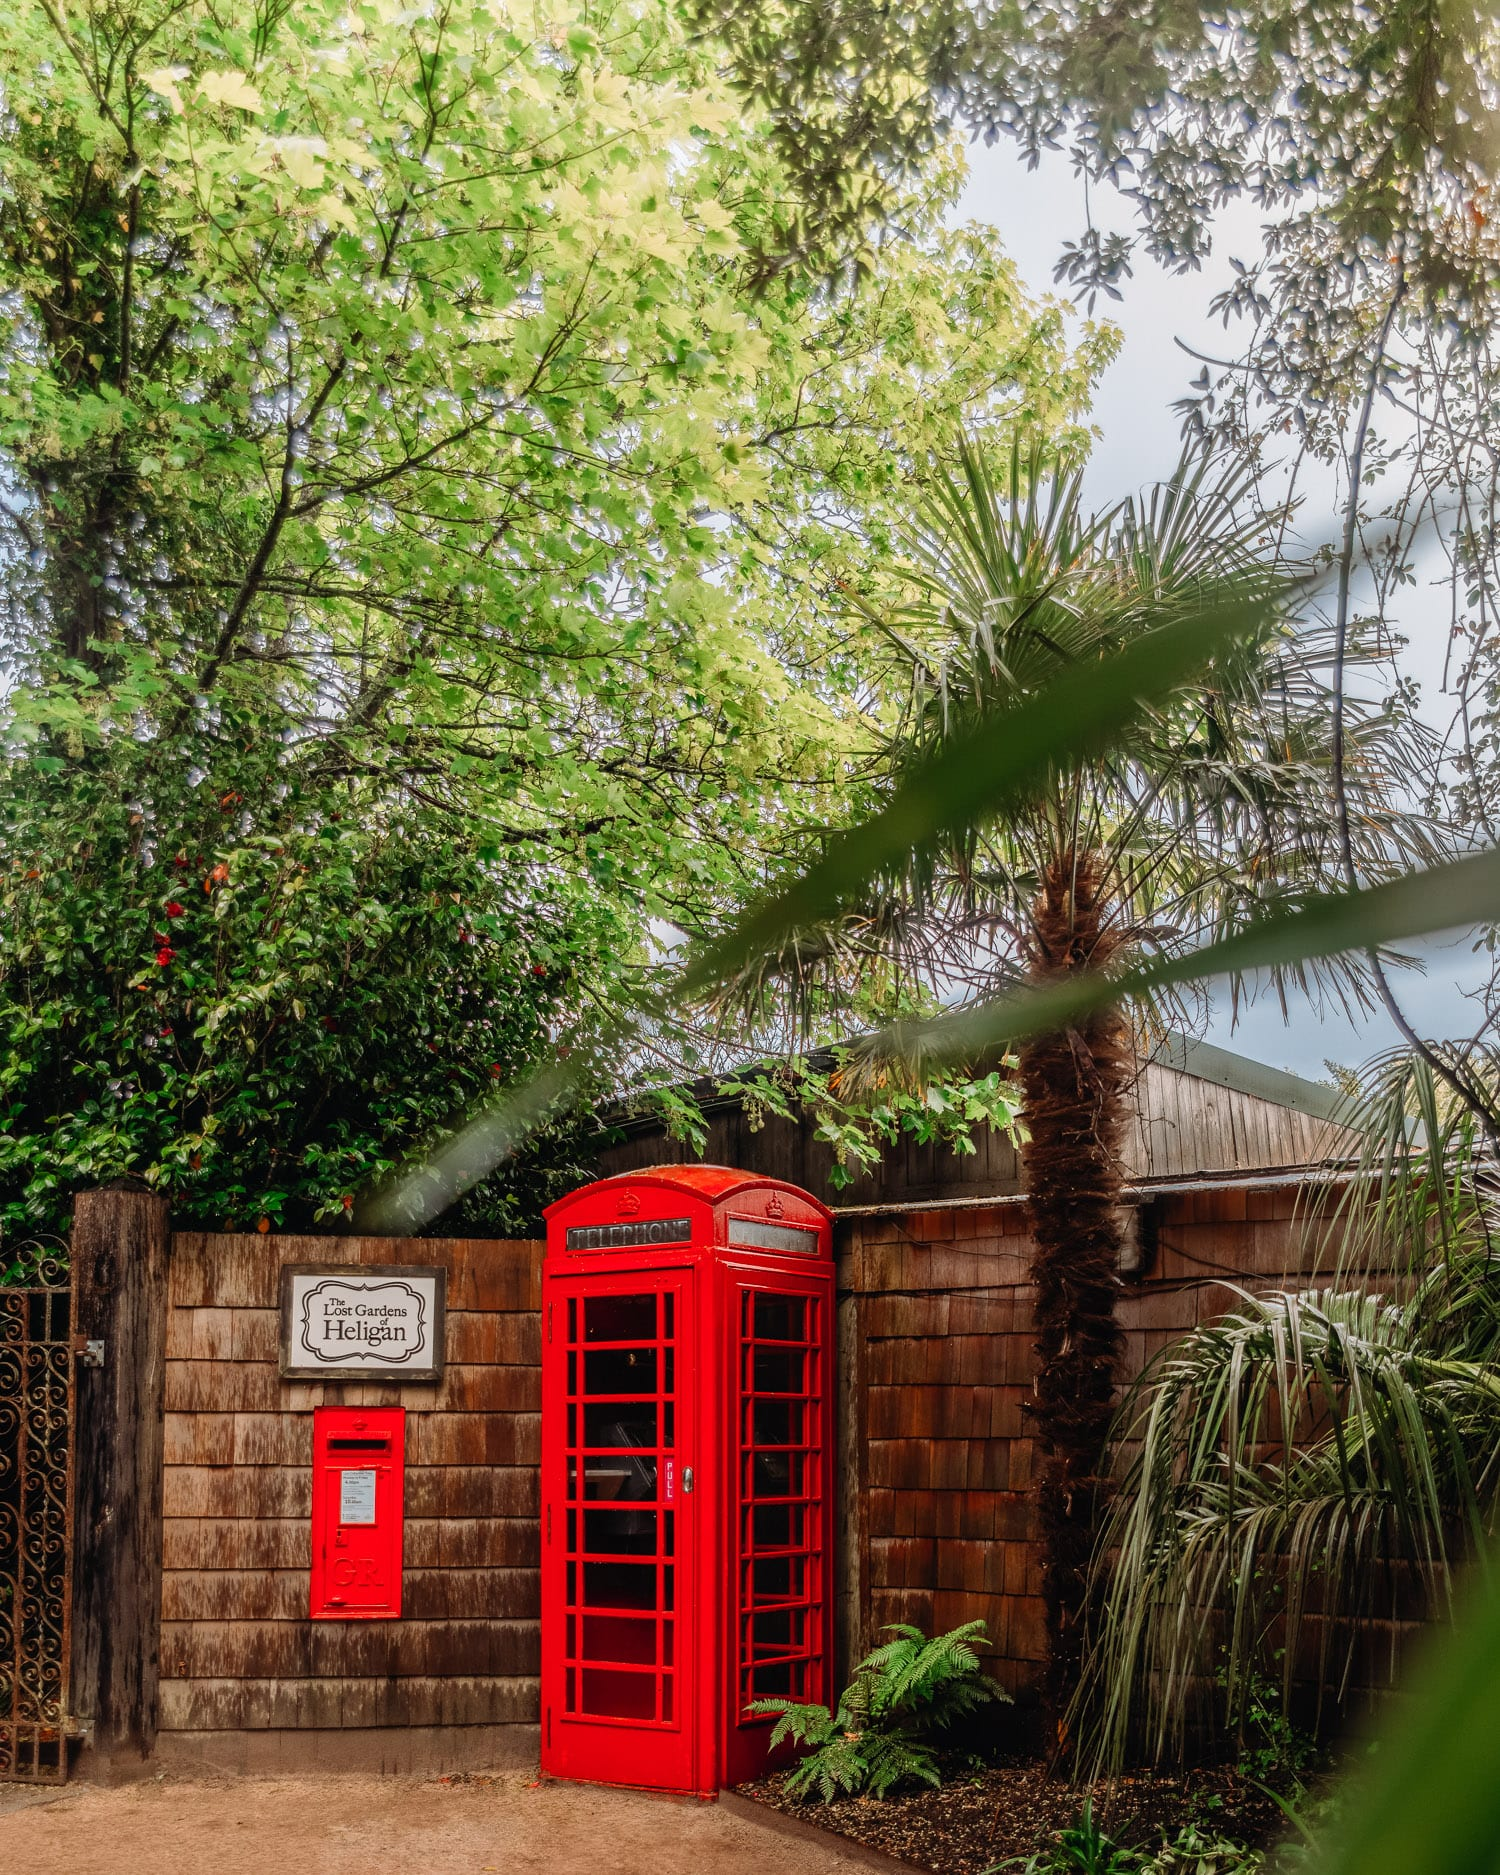 Red Telephone Booth in the Lost Gardens of Heligan, Cornwall